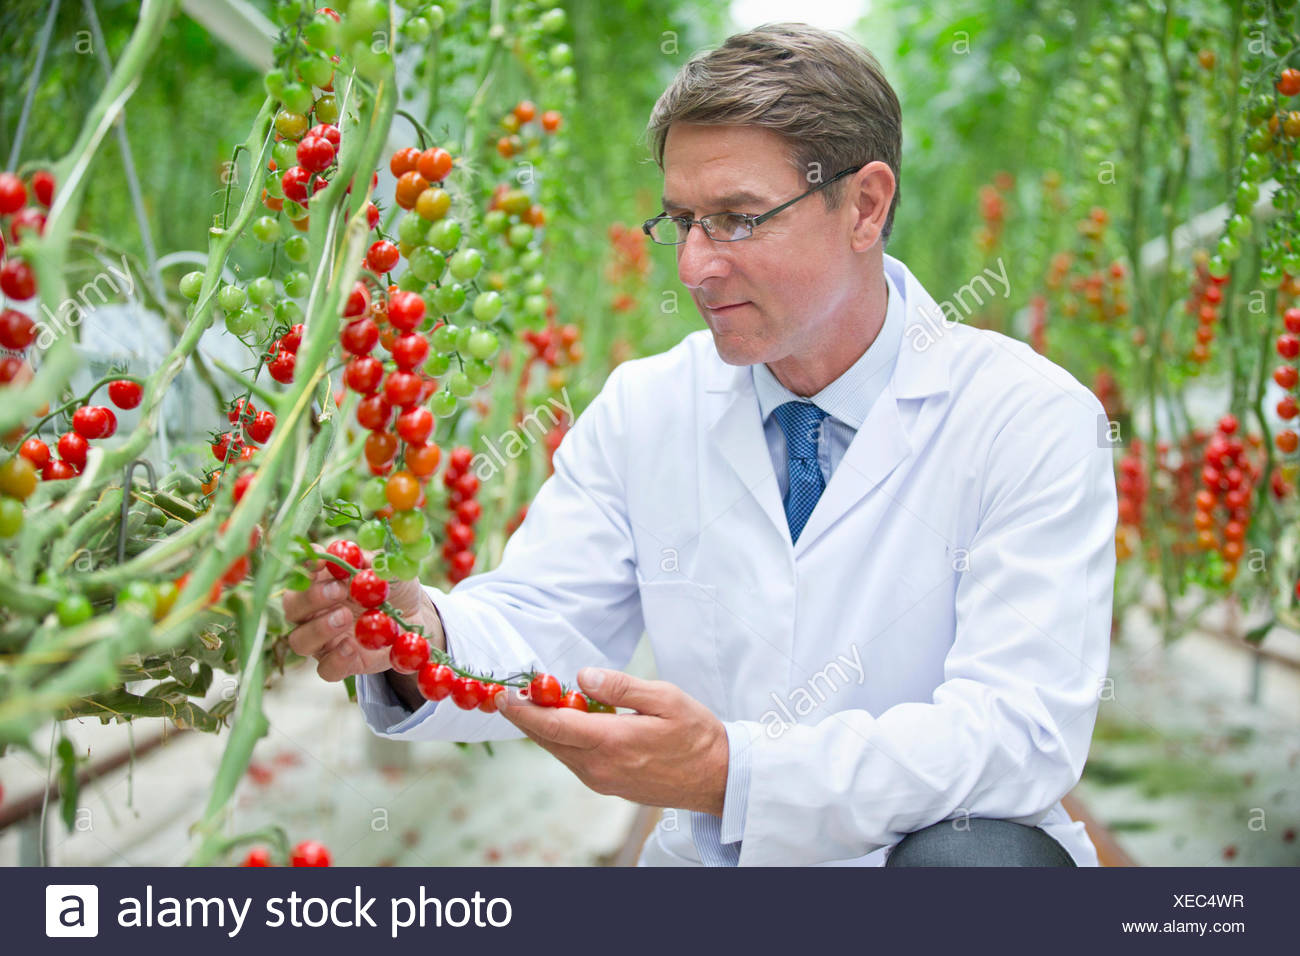 L'examen scientifique de l'alimentation des plants de tomates de vigne rouge mûre Photo Stock